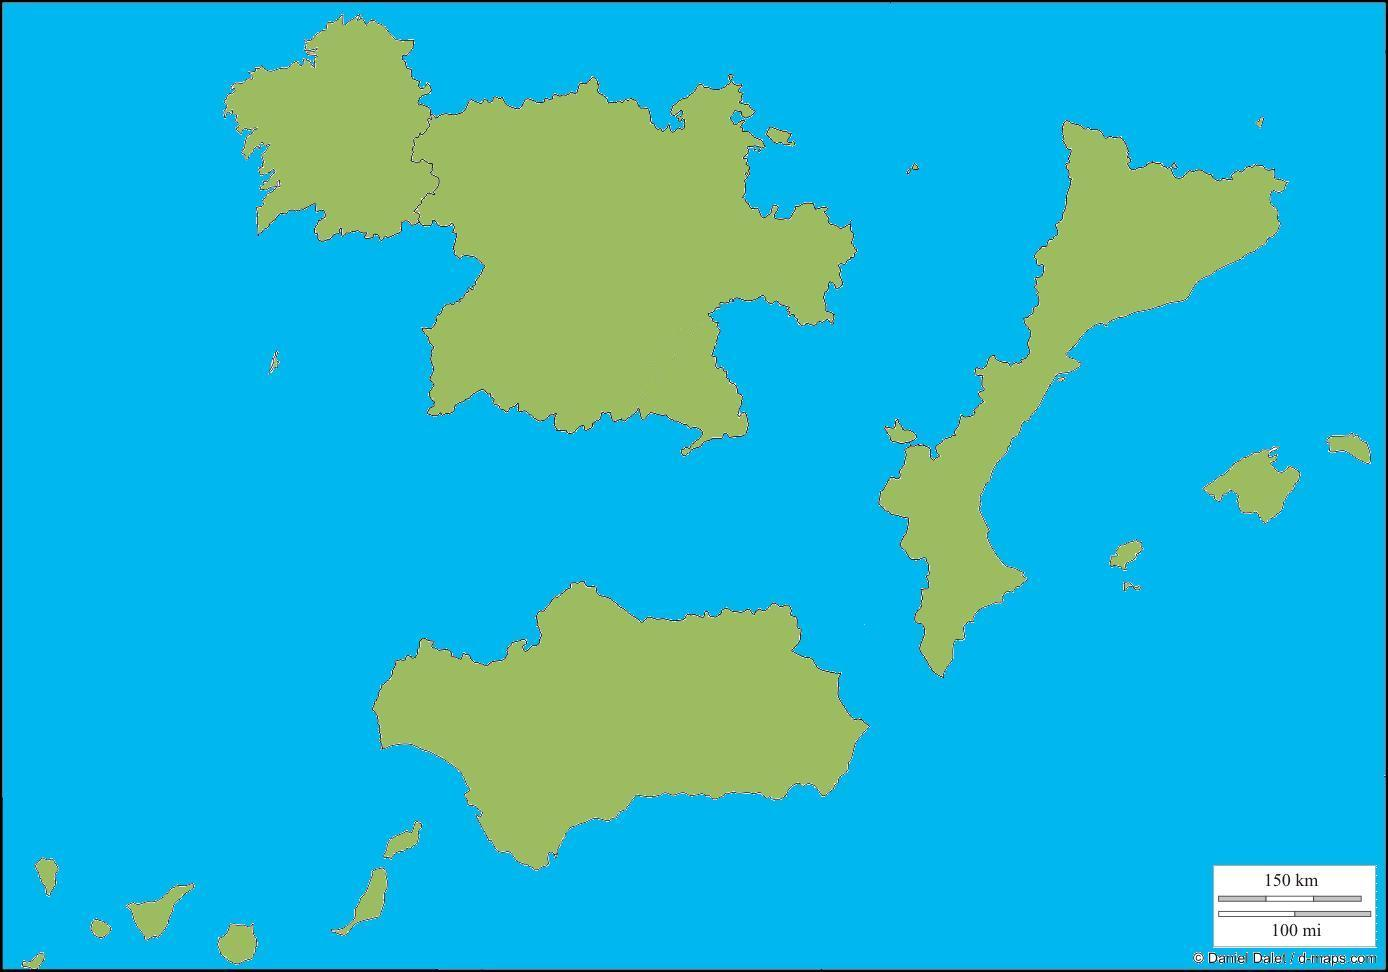 Spain 1: same concept using http://d-maps.com/ but with areas of Spain instead of Switzerland. This could easily be a complete world map.